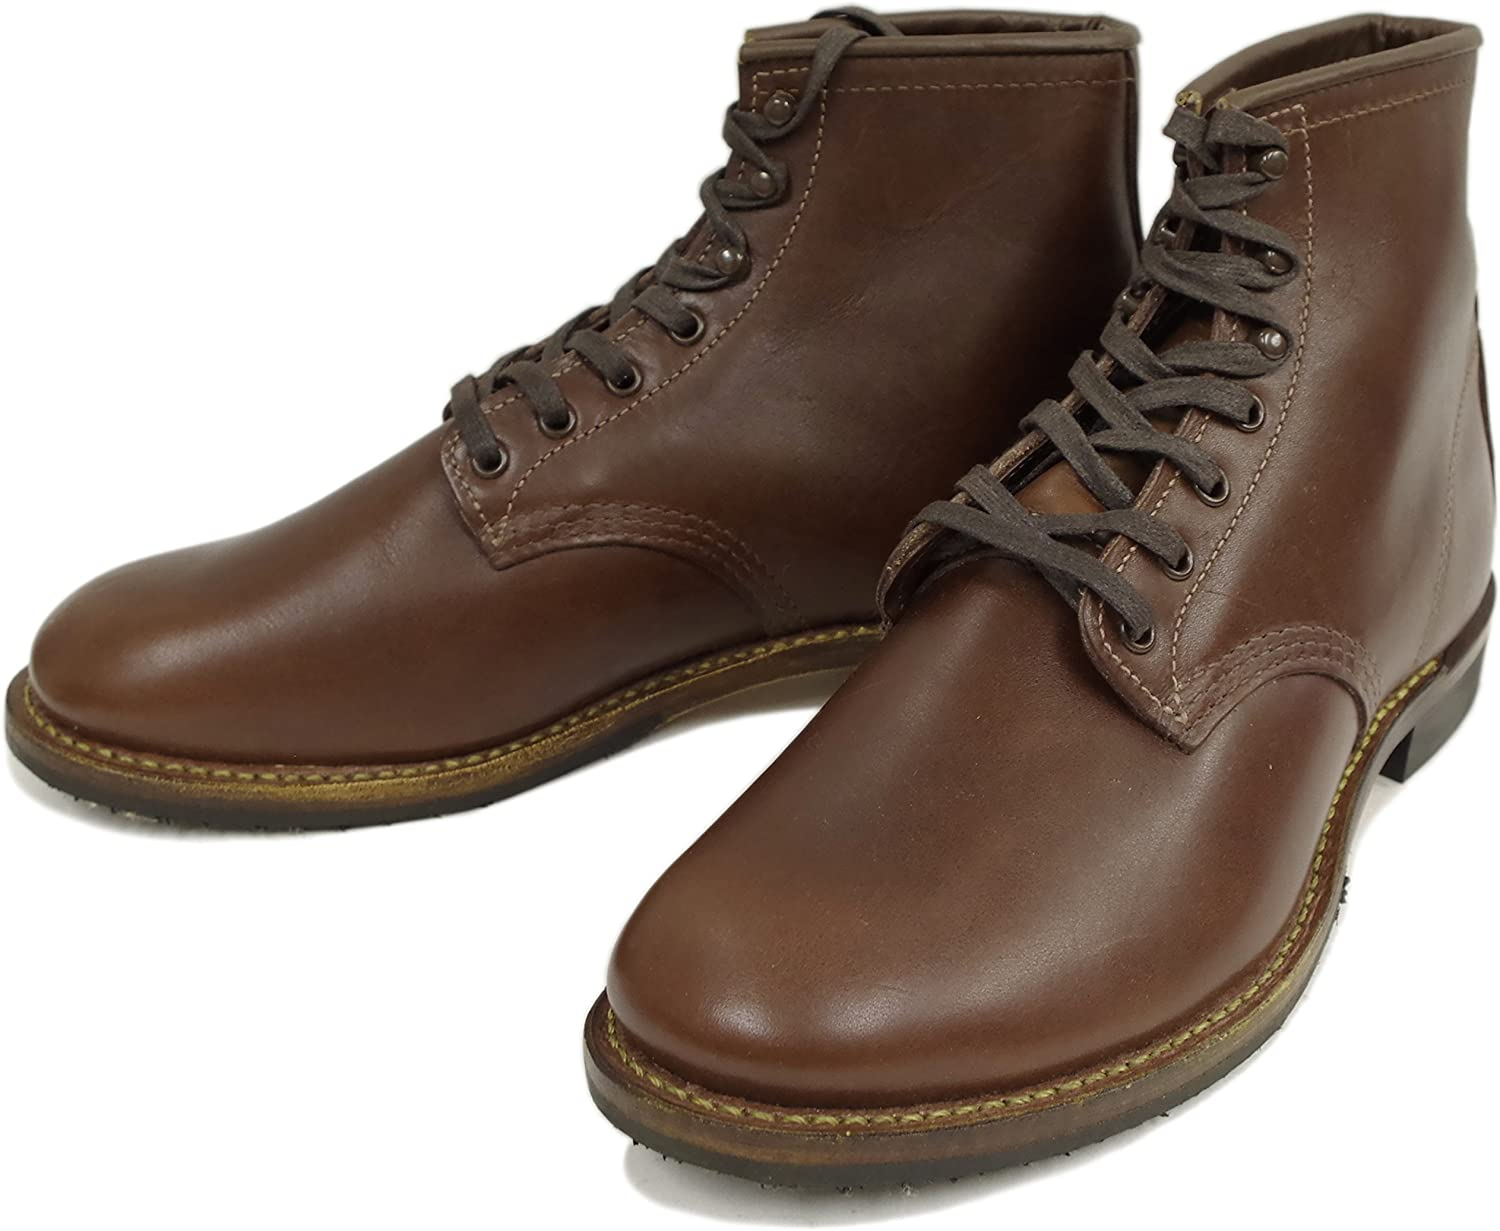 Red Wing 9063 Beckman Flat Box Boots